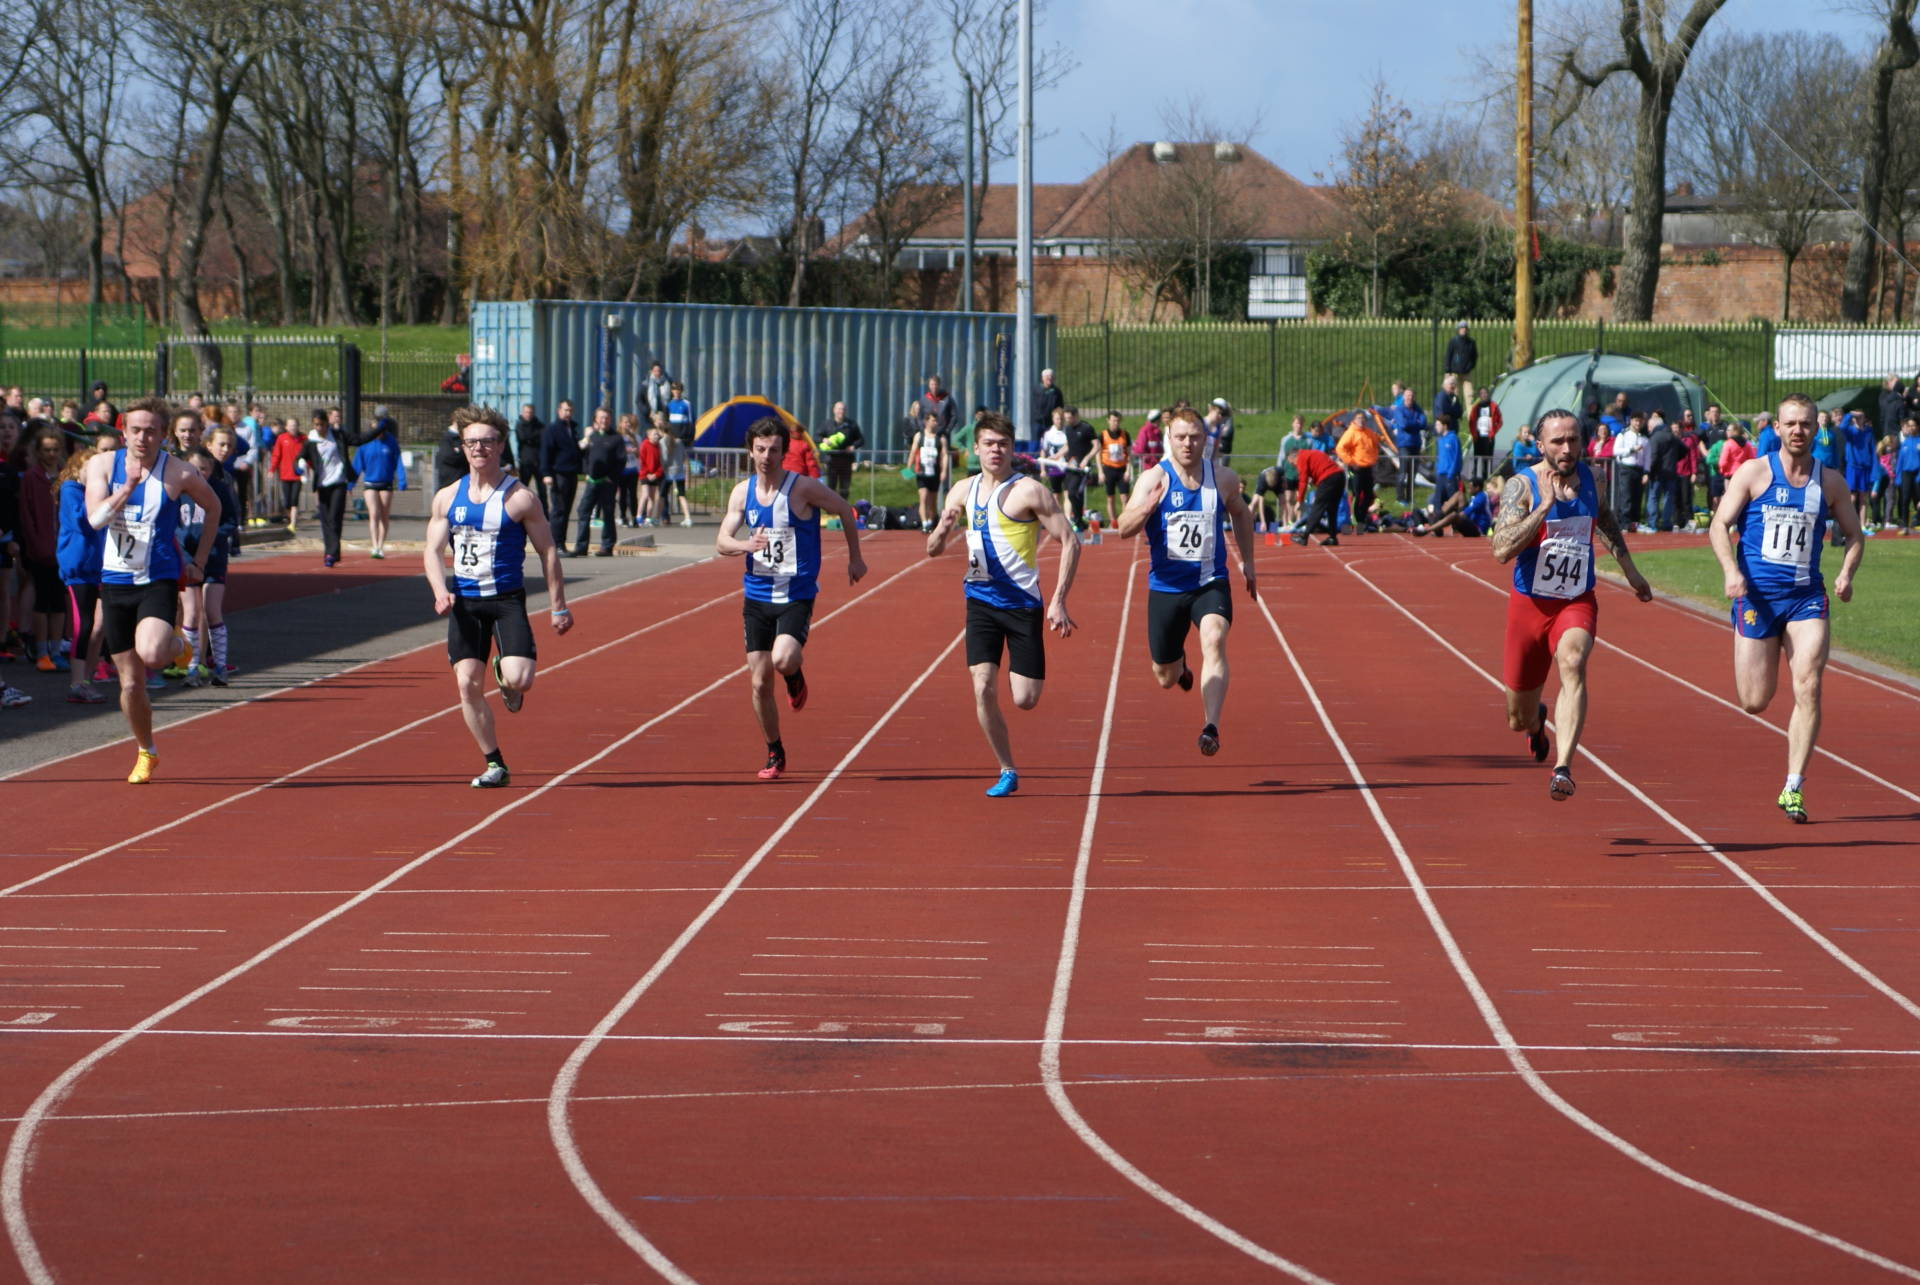 Track & Field Season opens for the Harriers